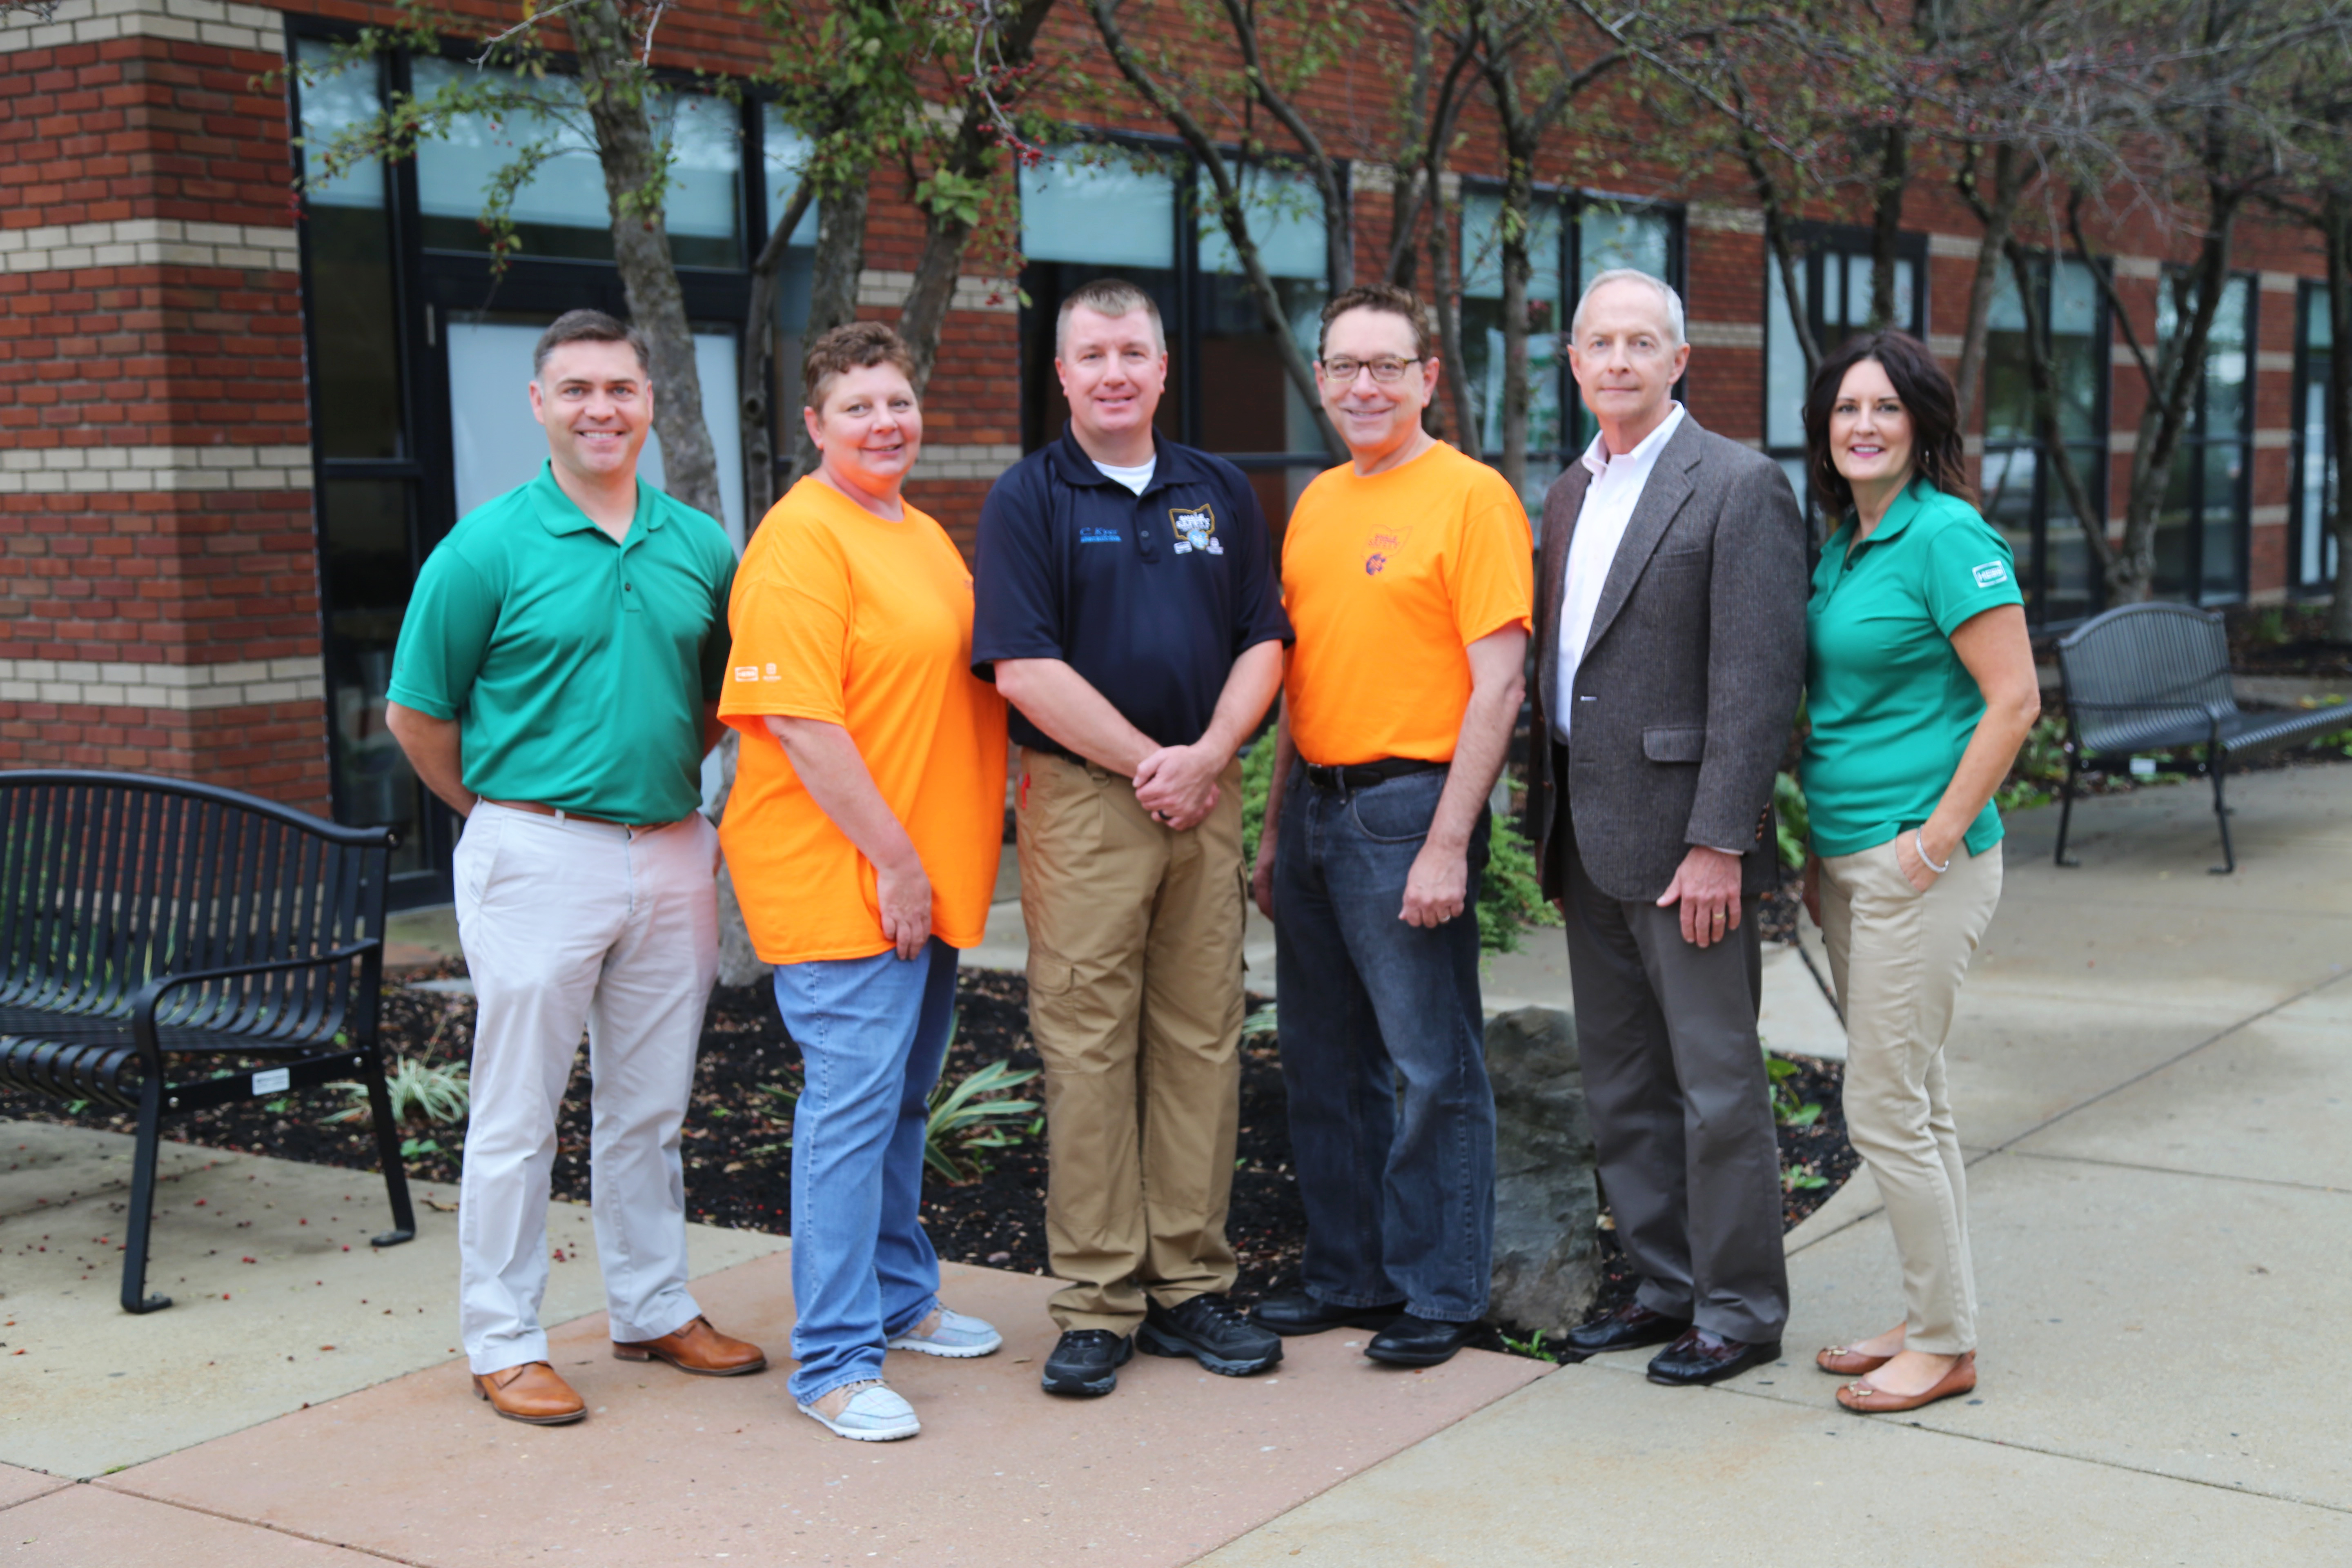 Photo caption (left to right): Liam McConvile, Hess Utica Lead; Ailsa Vogelsang, Belmont College EMS/Fire Safety Coordinator; Curtis Kyer, EMS Fire Safety Program Assistant; Dr. Paul Gasparro, Belmont College President; Rob Williams, Hess Operations Manager; and Glenda Harlan, Hess Social Responsibility Chair.